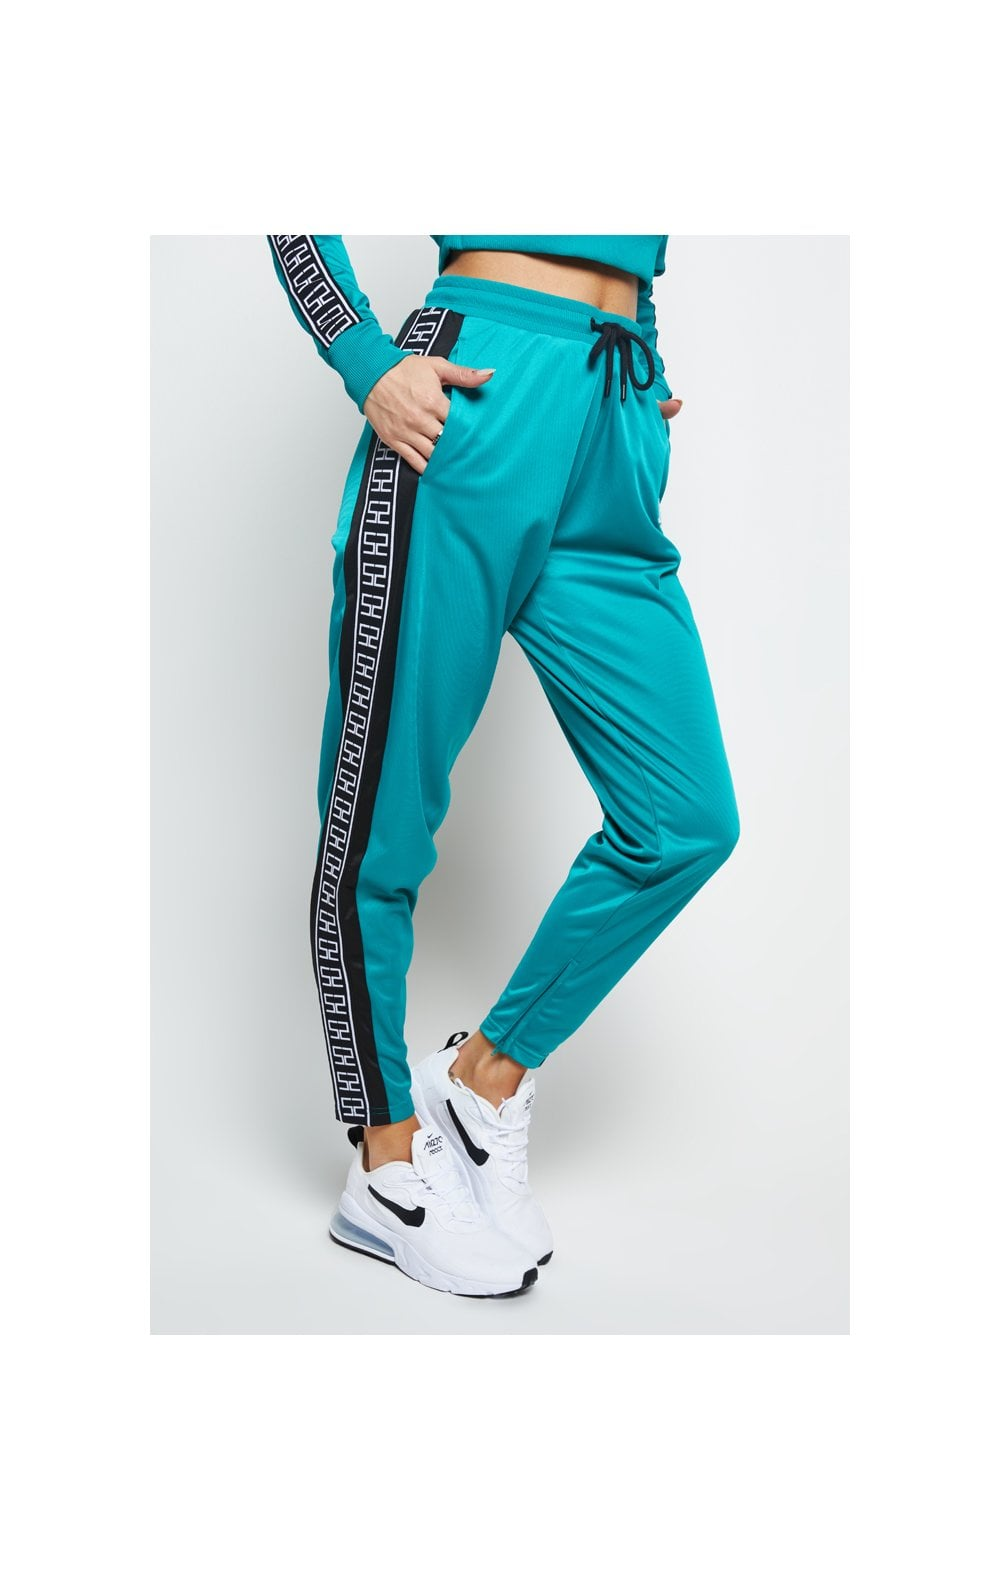 Load image into Gallery viewer, SikSilk Azure Track Pants - Teal (3)